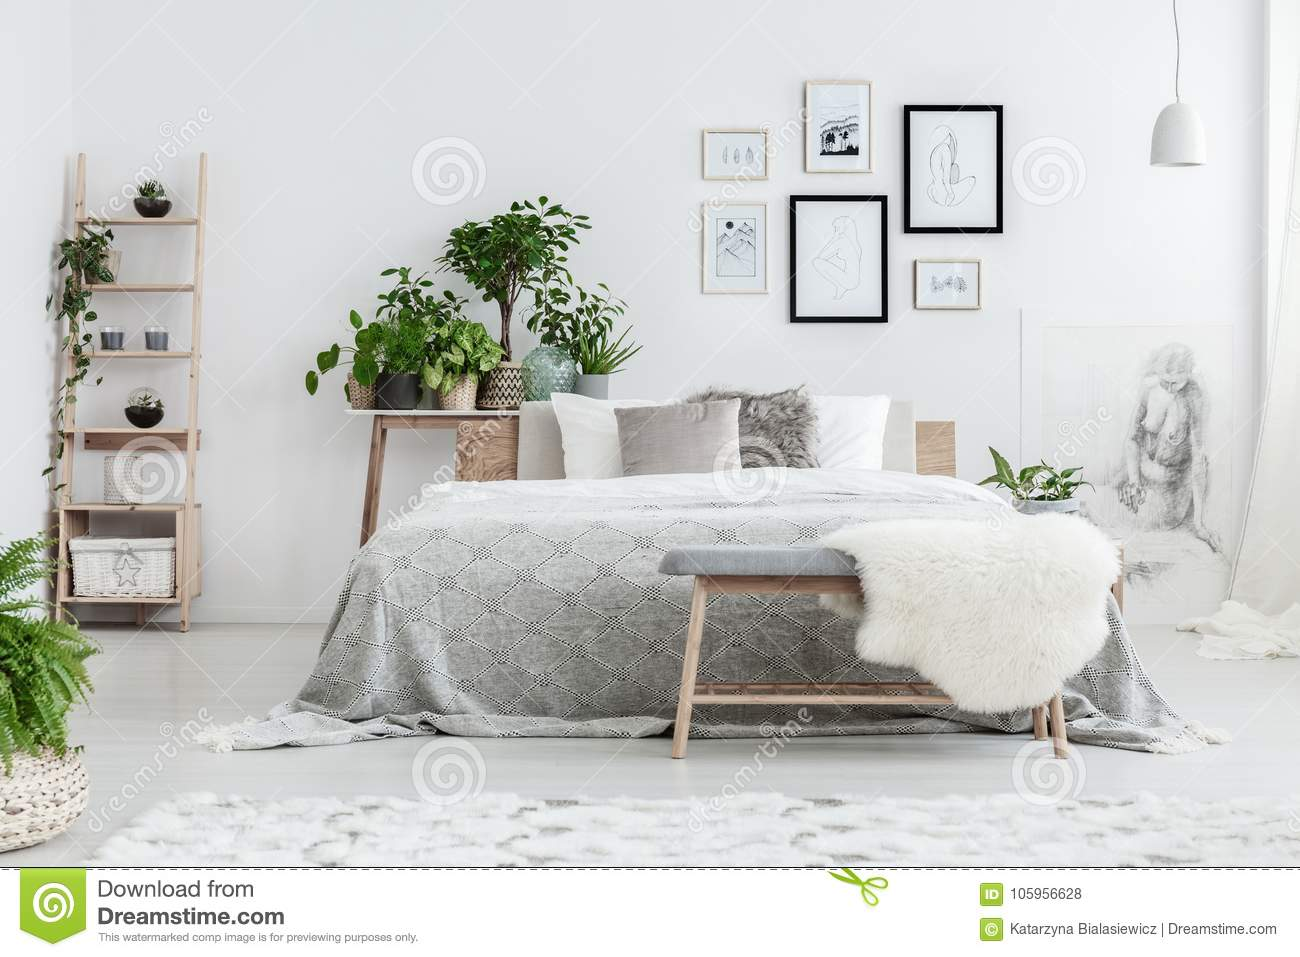 Drawings on the wall stock photo. Image of drawings - 105956628